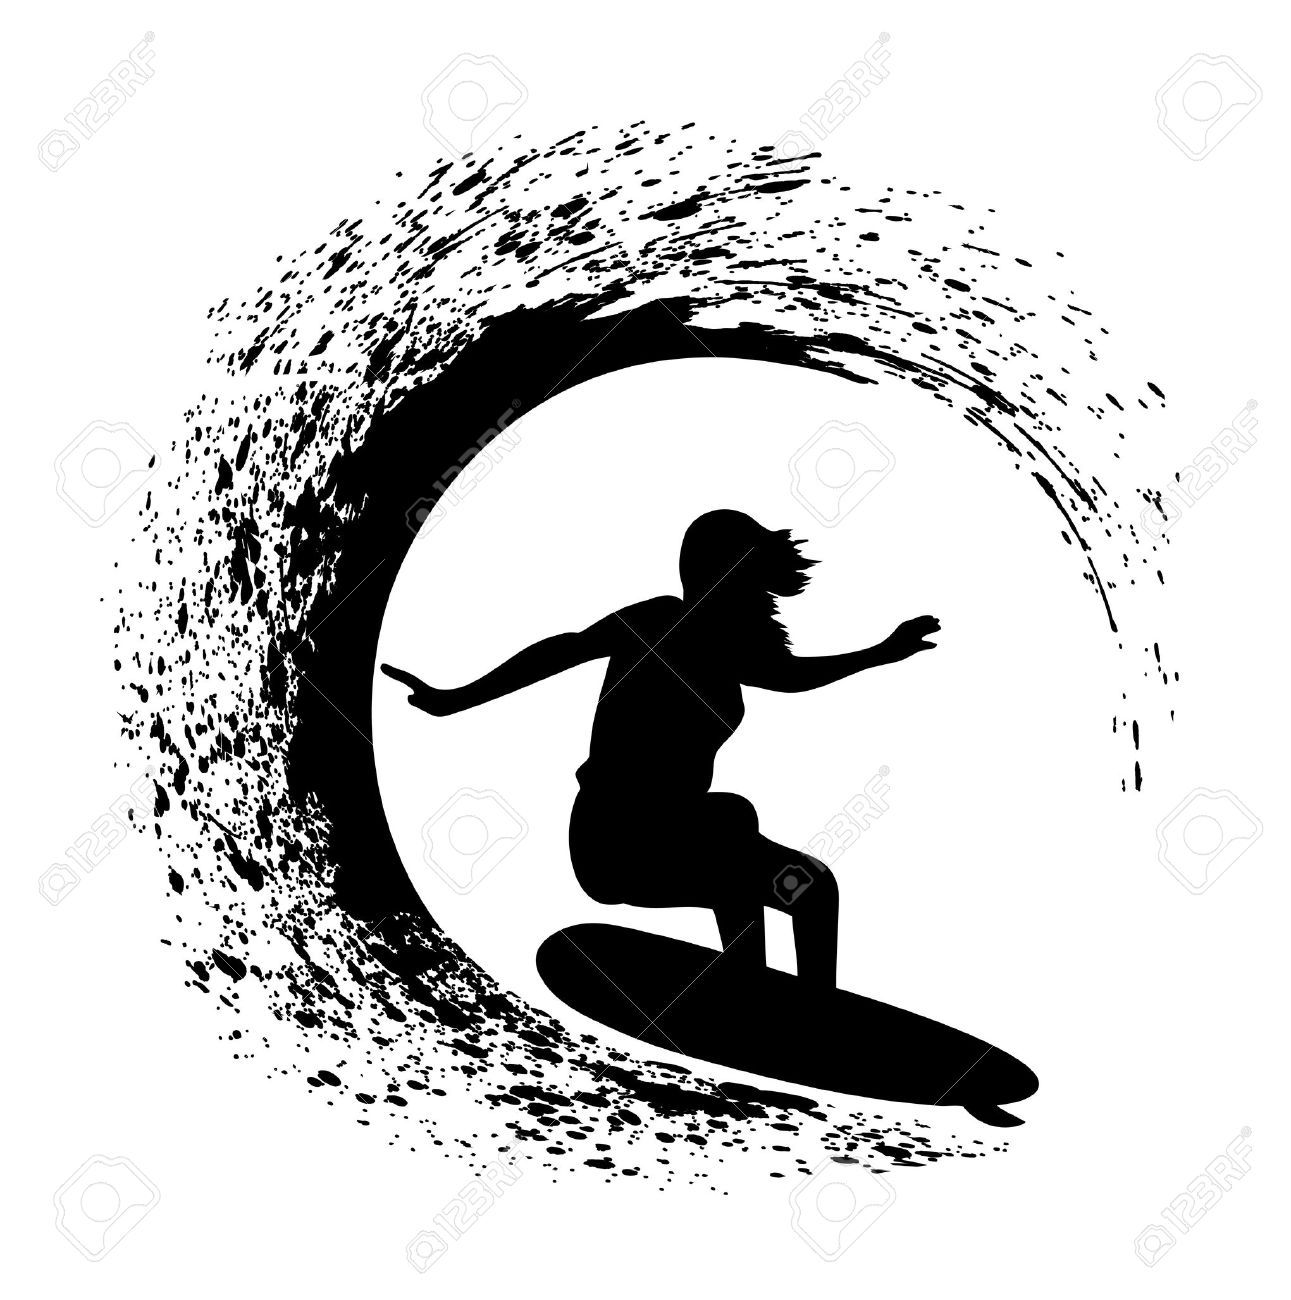 Surfing wave clipart clip library Surfing wave clipart 4 » Clipart Portal clip library